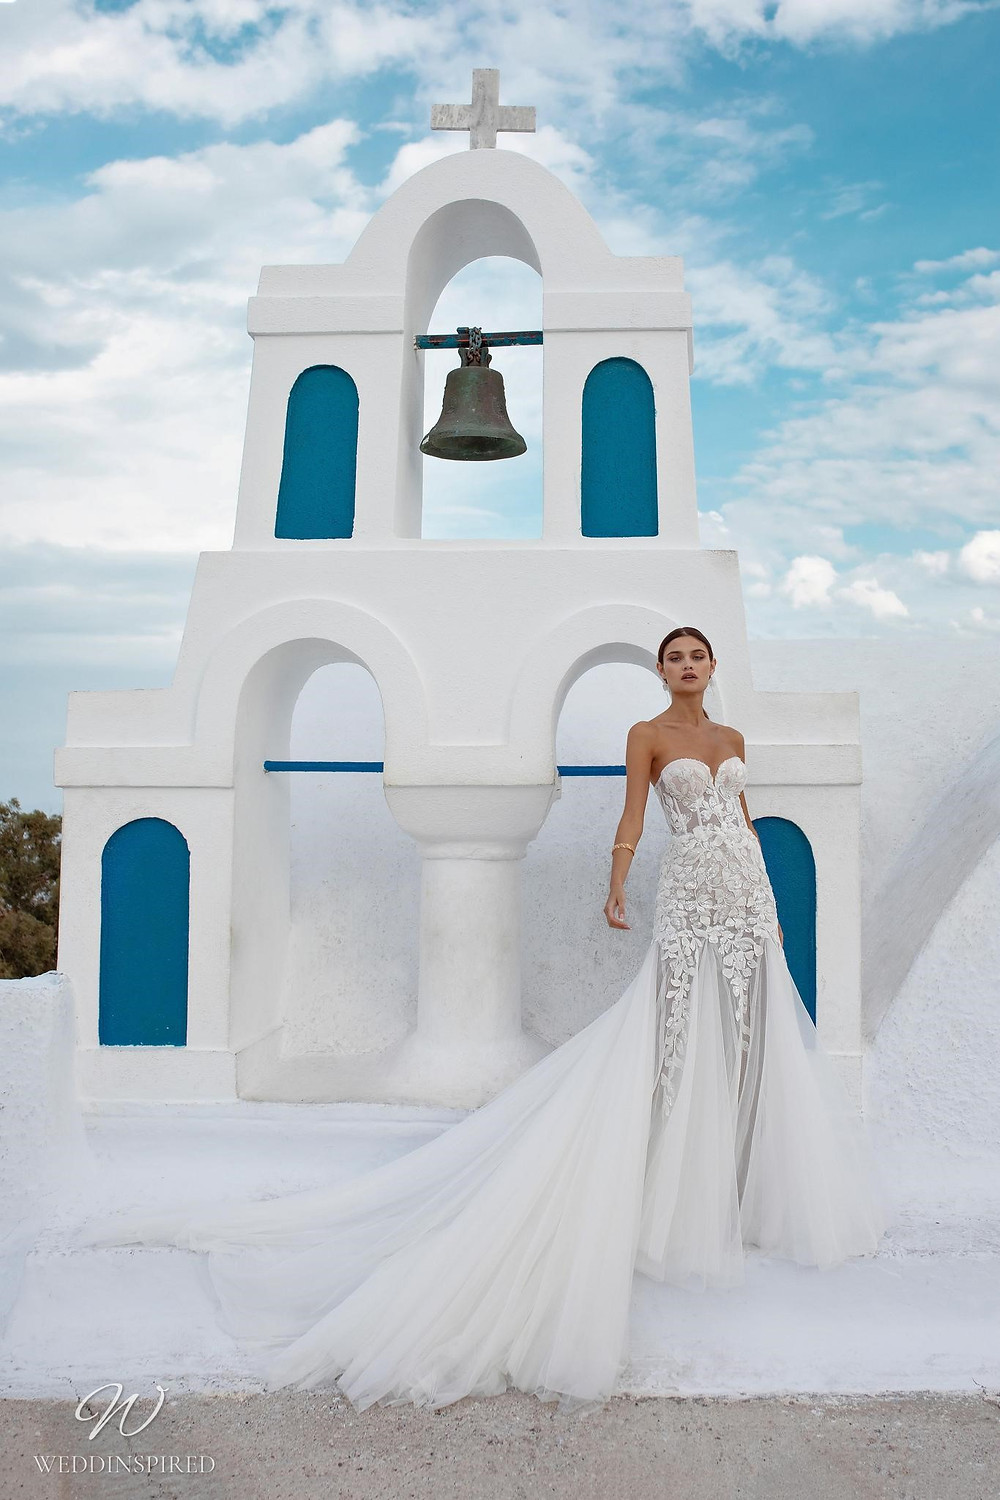 A Ricca Sposa strapless lace and tulle mermaid wedding dress with a sweetheart neckline